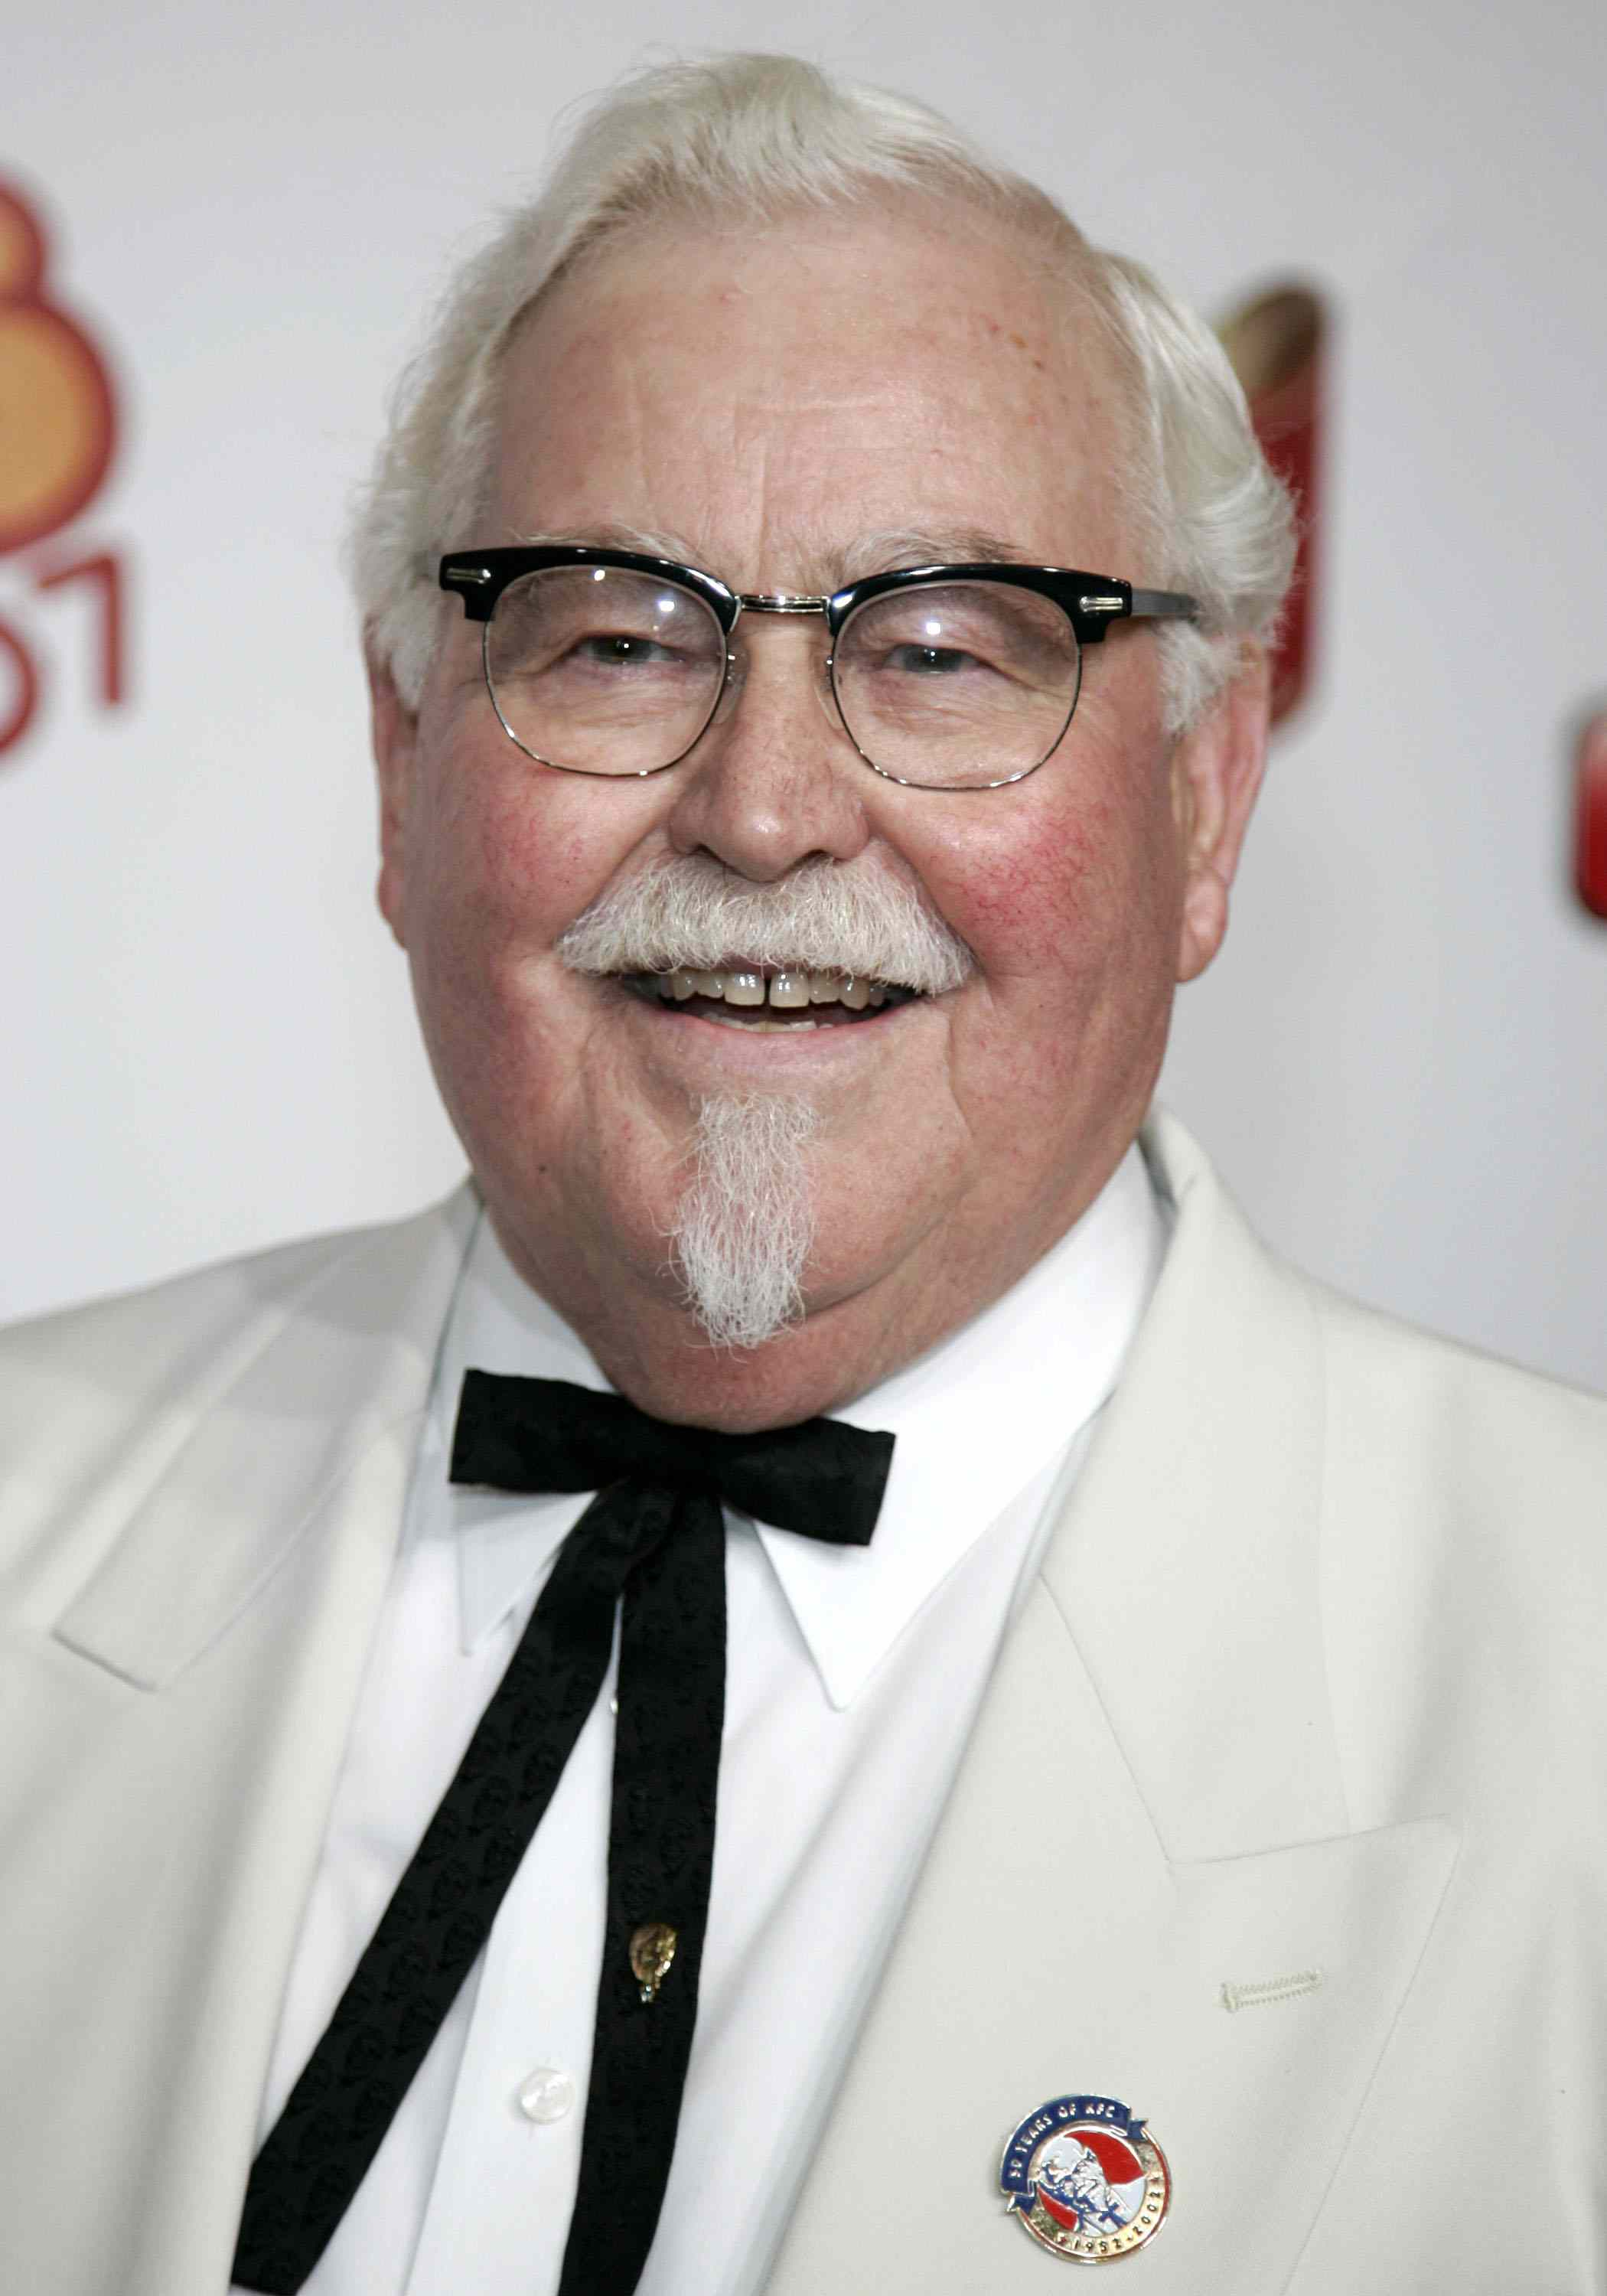 Colonel Sanders began cooking and serving fried chicken at his gas station when he was 40.